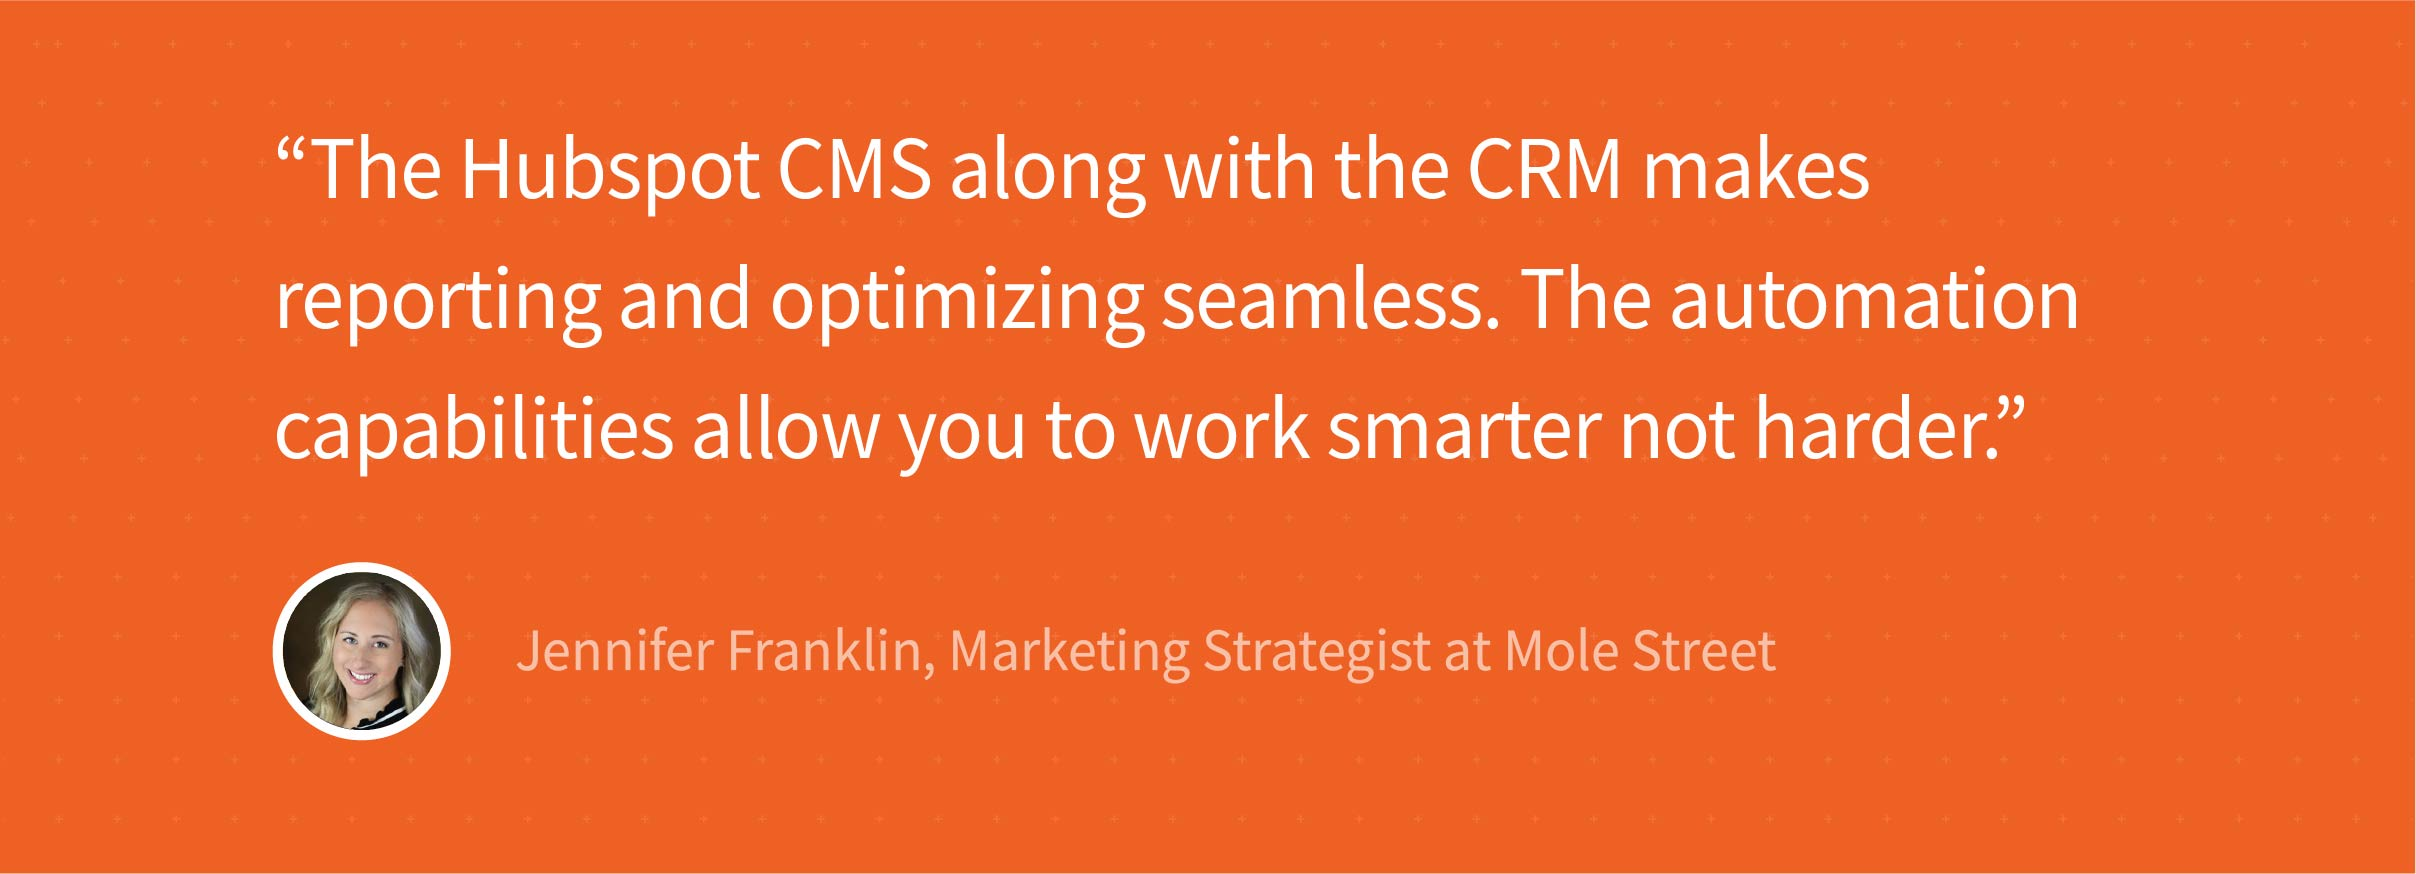 CRM-reporting-and-optimization